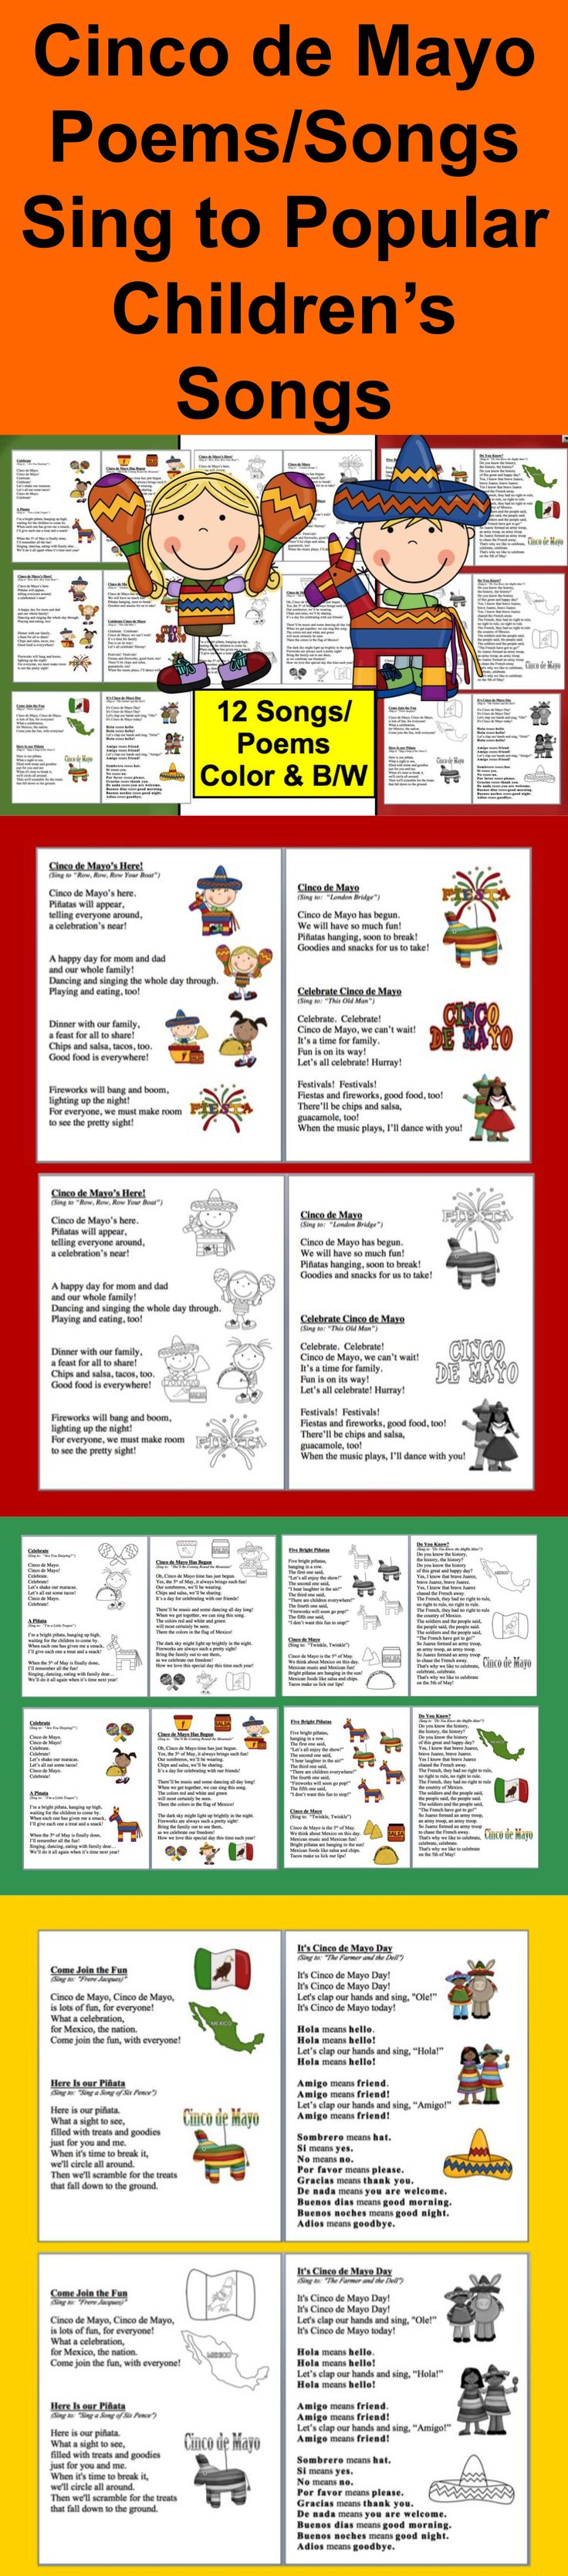 $ Cinco de Mayo Poems and Songs - 18 Pages – 2 versions of each –  color & B/W - 12 Cinco de Mayo Songs to sing to popular children's songs. Enjoy poetry during April Poetry Month while learning about Cinco de Mayo, too!  Use during shared reading or guided reading.  Make a Cinco de Mayo Booklet for your students to take home and share with their families… perhaps a Cinco de Mayo Family Sing Along.